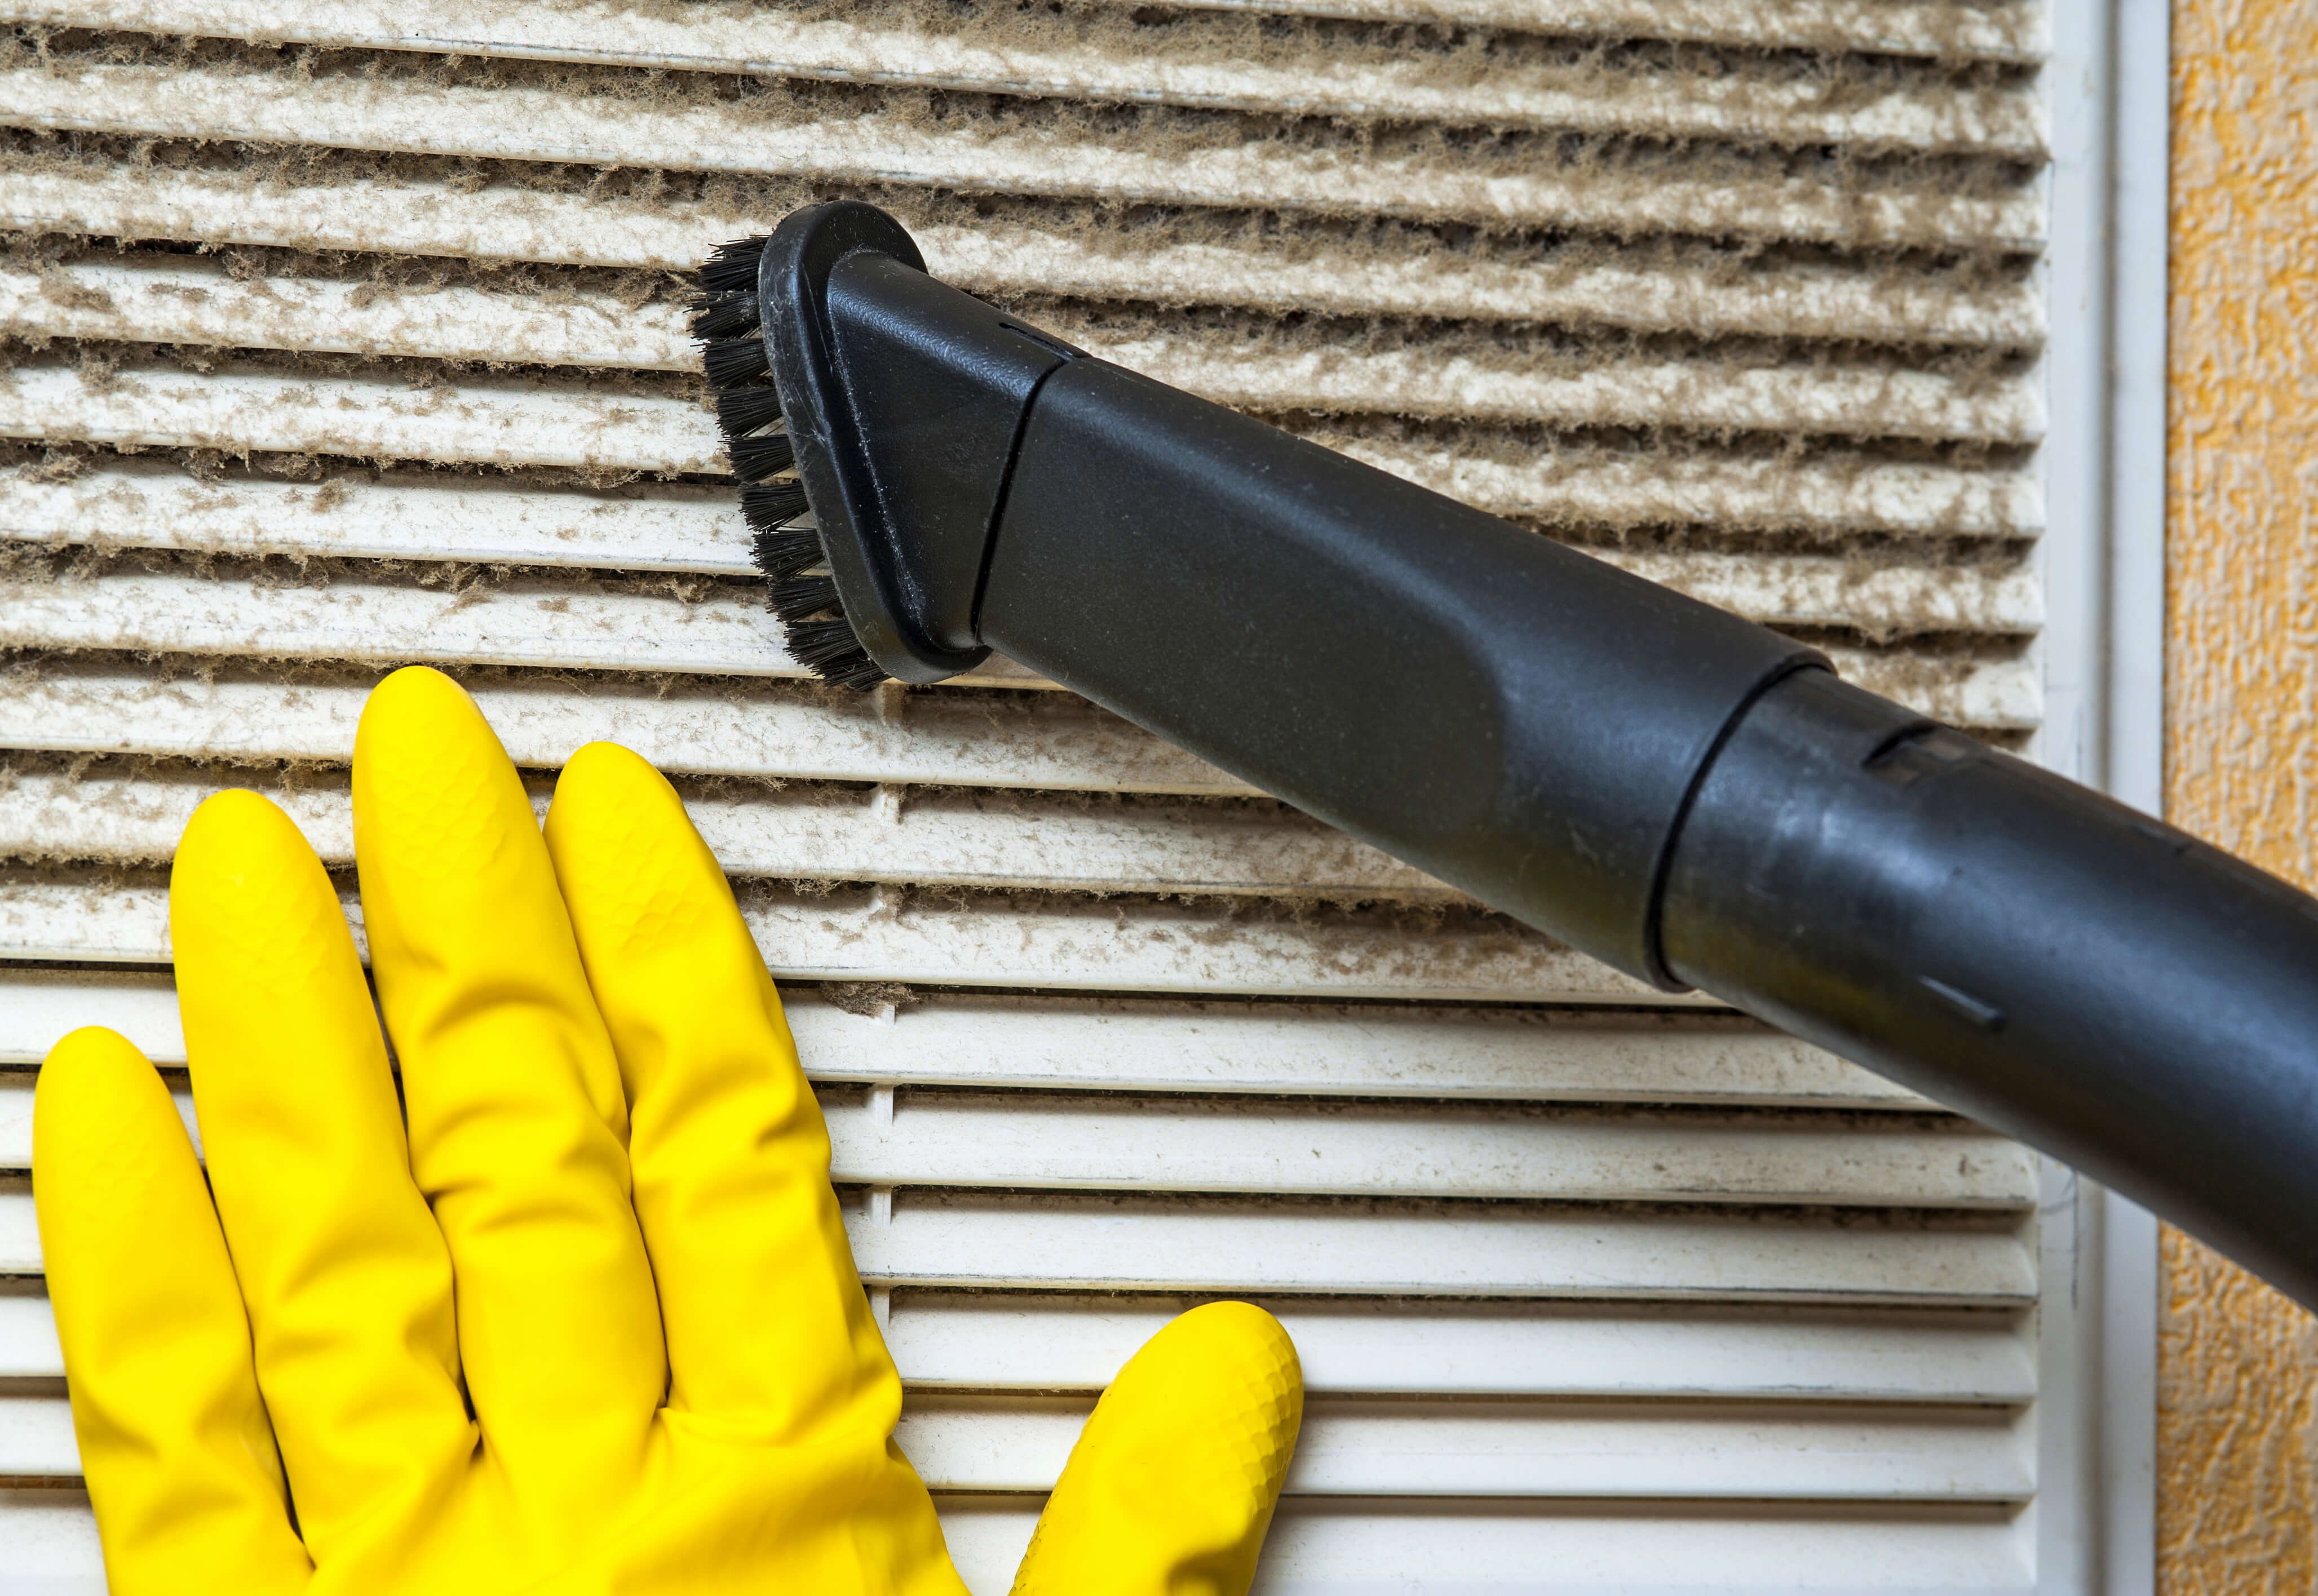 Ventilation grill cleaning